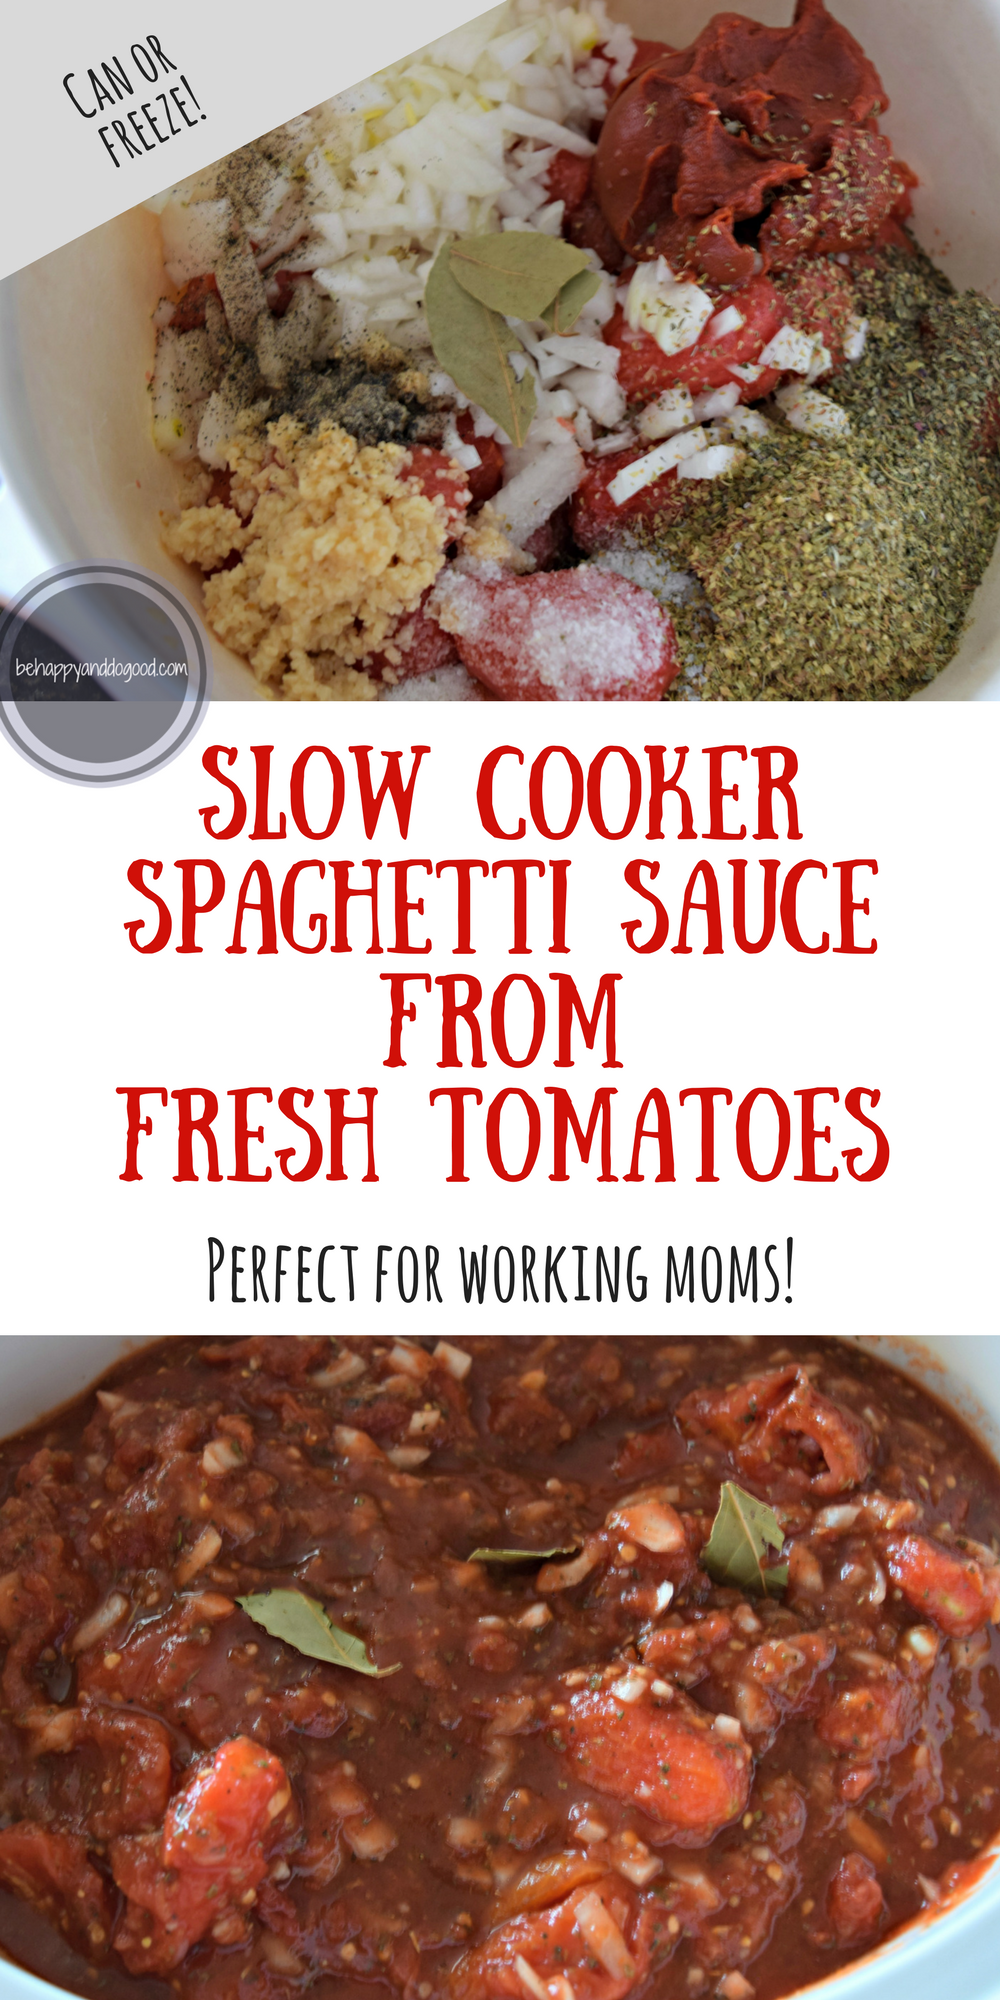 Slow Cooker Spaghetti Sauce From Garden Tomatoes Perfect